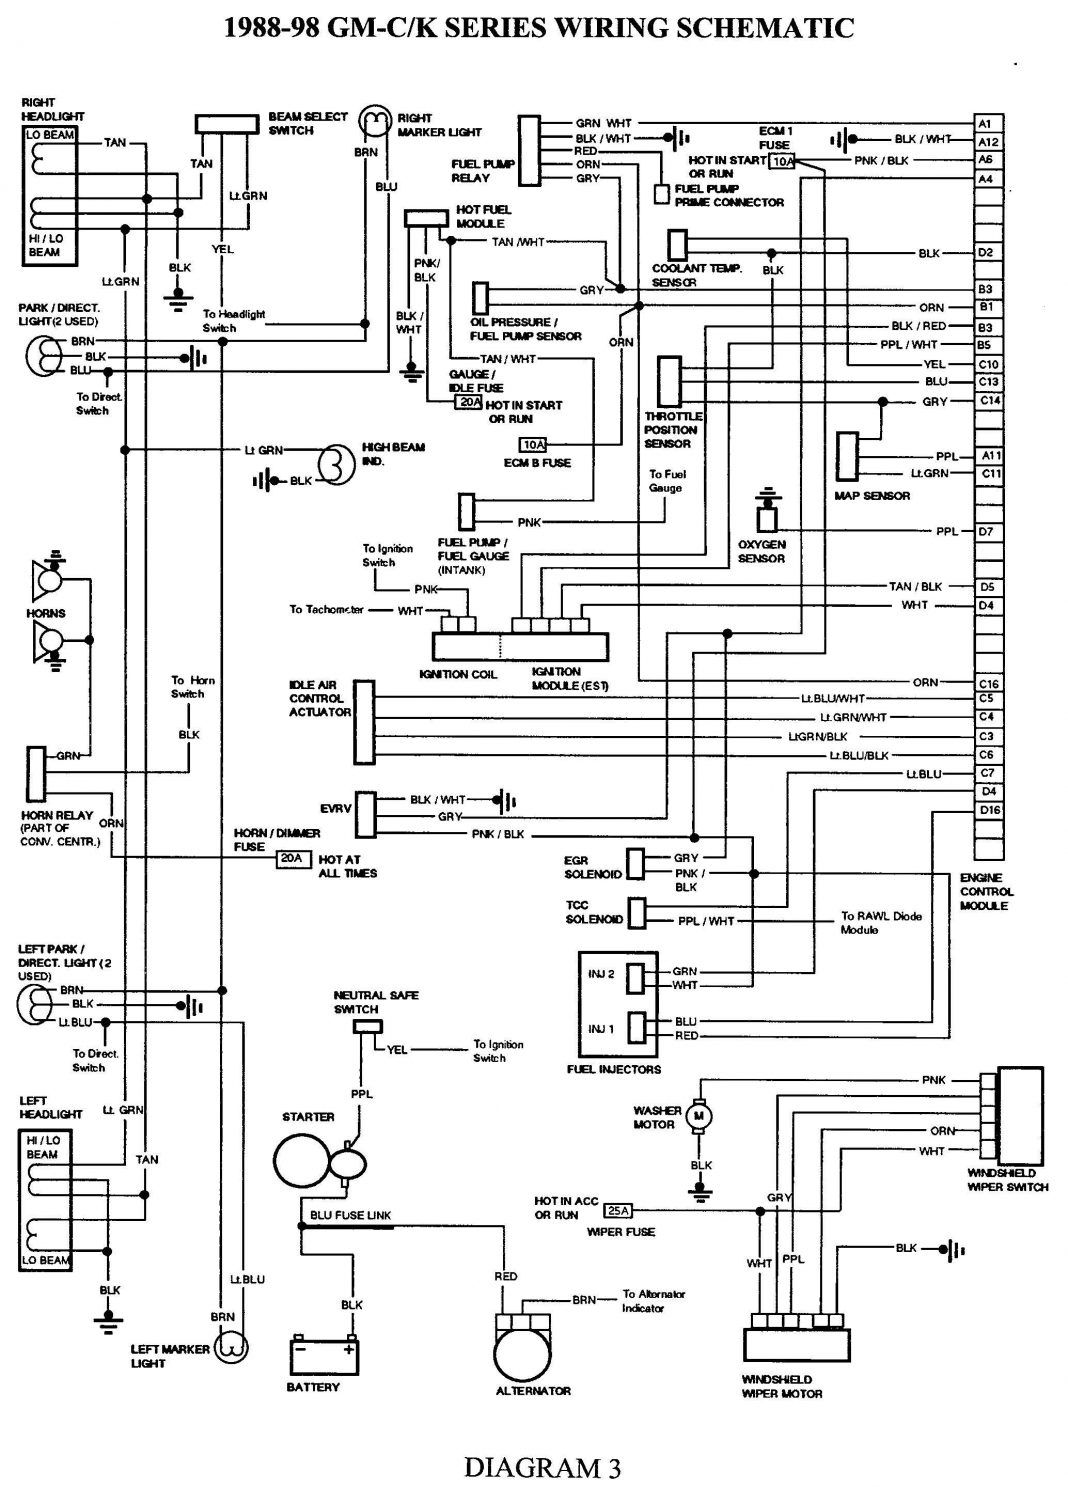 20 Simple Automotive Wiring Diagrams References - bacamajalah in 2020 | Electrical  diagram, Electrical wiring diagram, Chevy 1500Pinterest